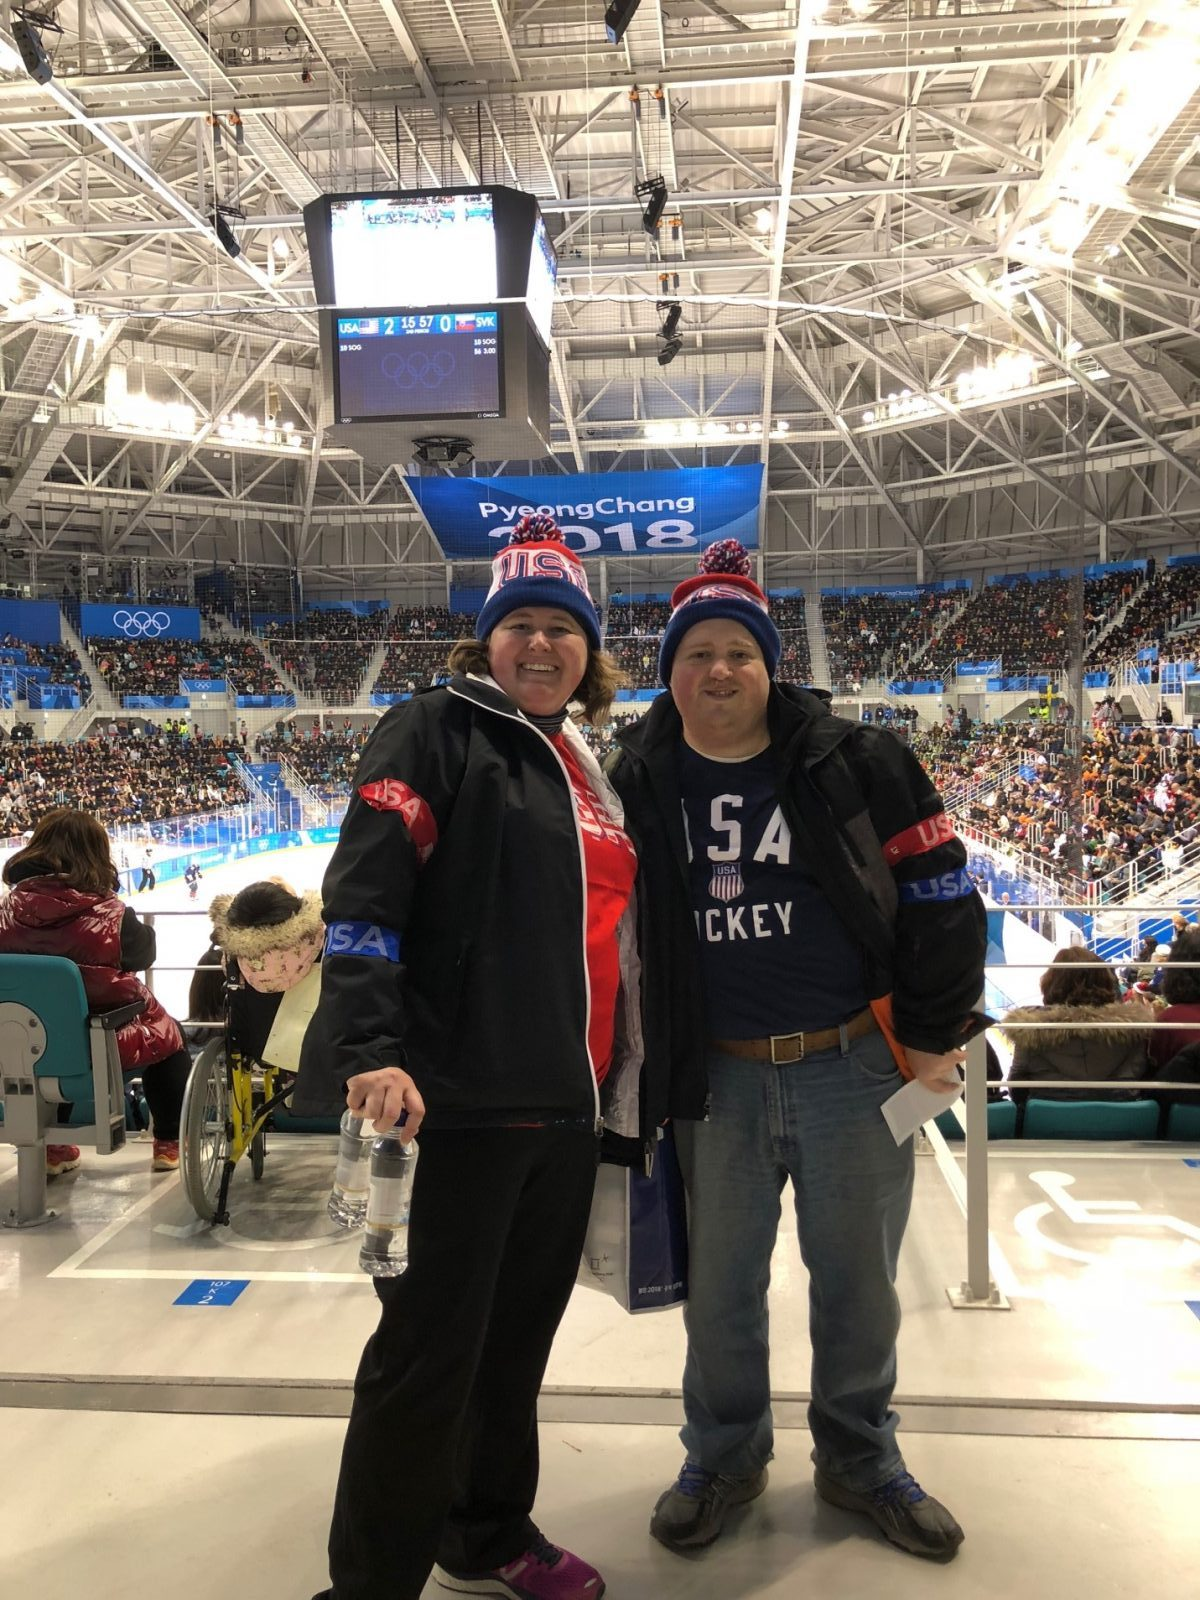 Success! An Unforgettable Trip to the Olympics, Taking in the History and Culture of Korea, And More!